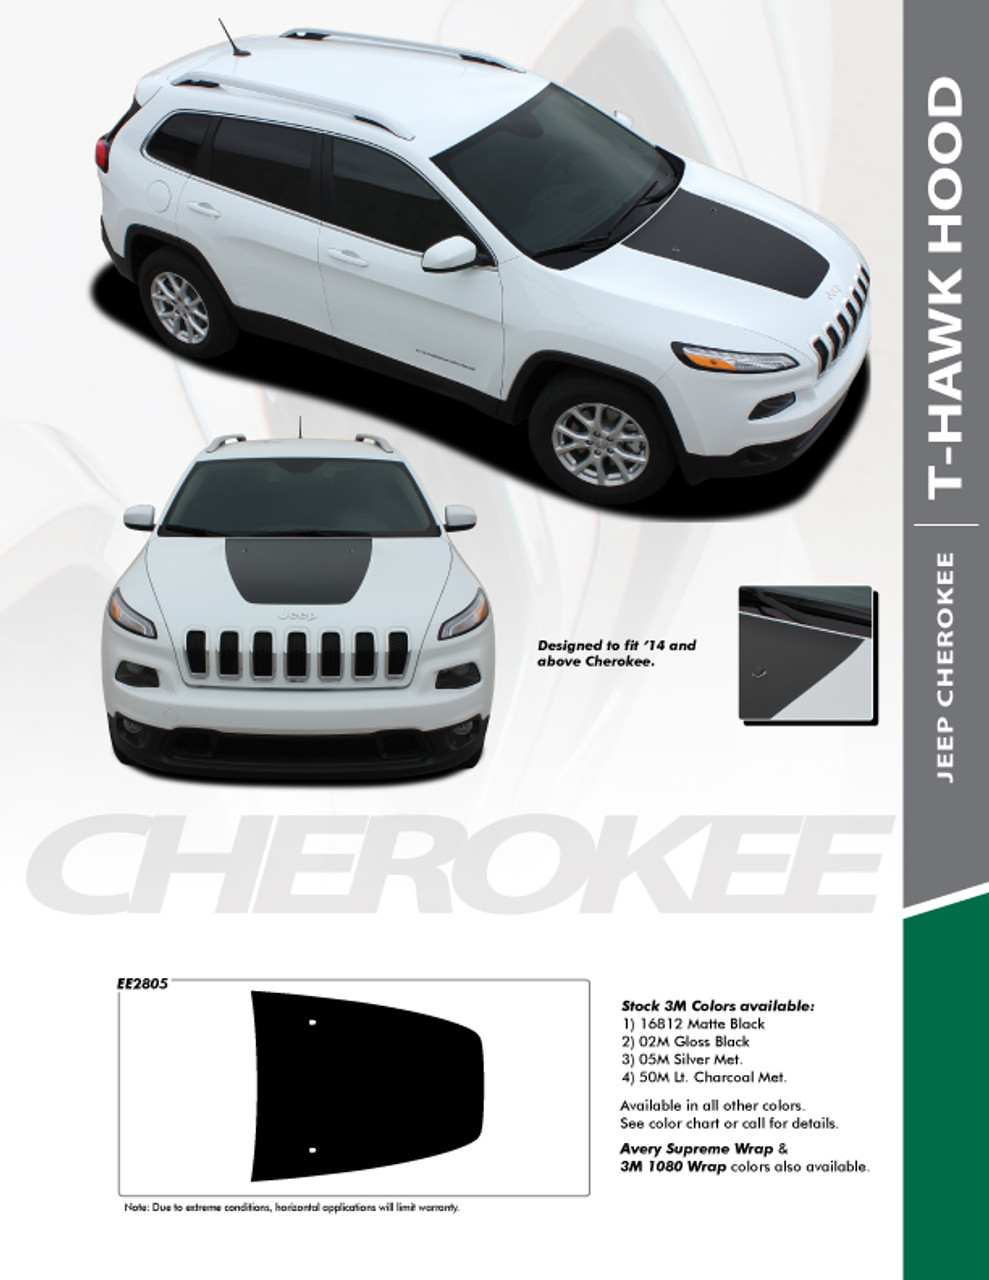 Jeep Grand Cherokee Hood Decals : grand, cherokee, decals, Cherokee, Decals, Trailhawk, Stripes, T-HAWK